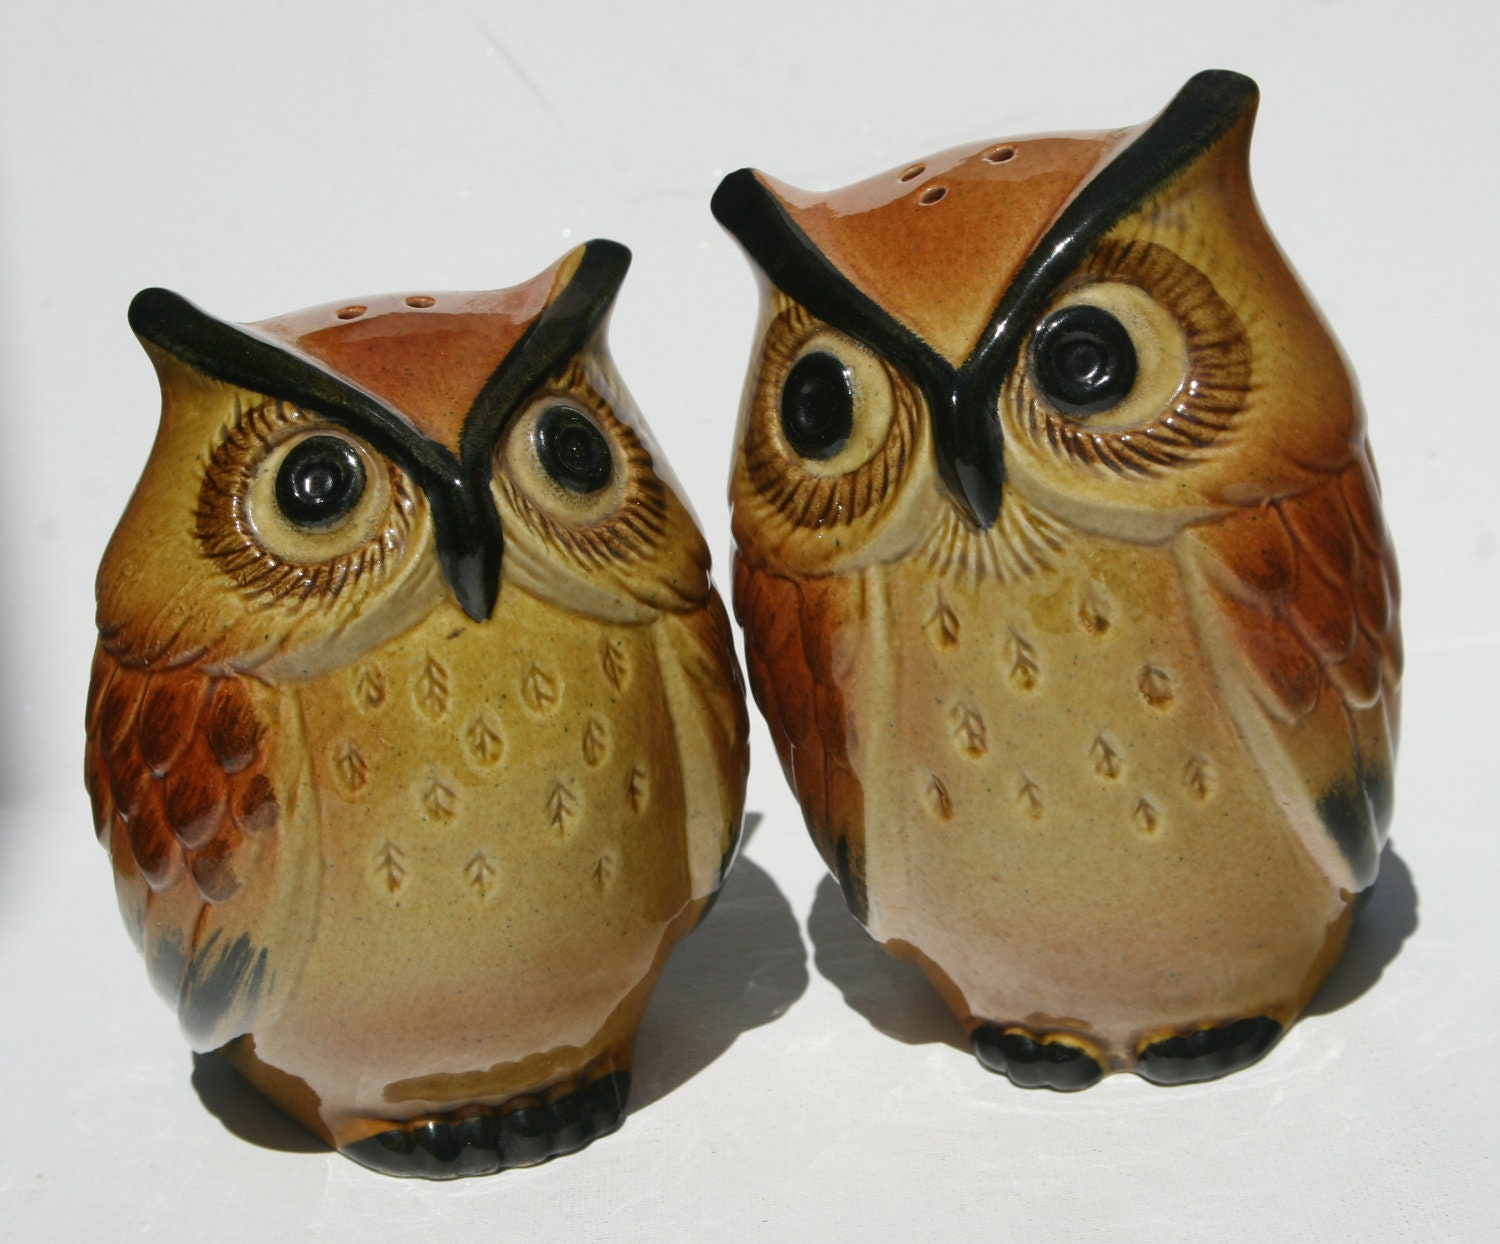 1965 Rare Metlox Poppytrail Ceramic Large Owl Kitchen Salt And